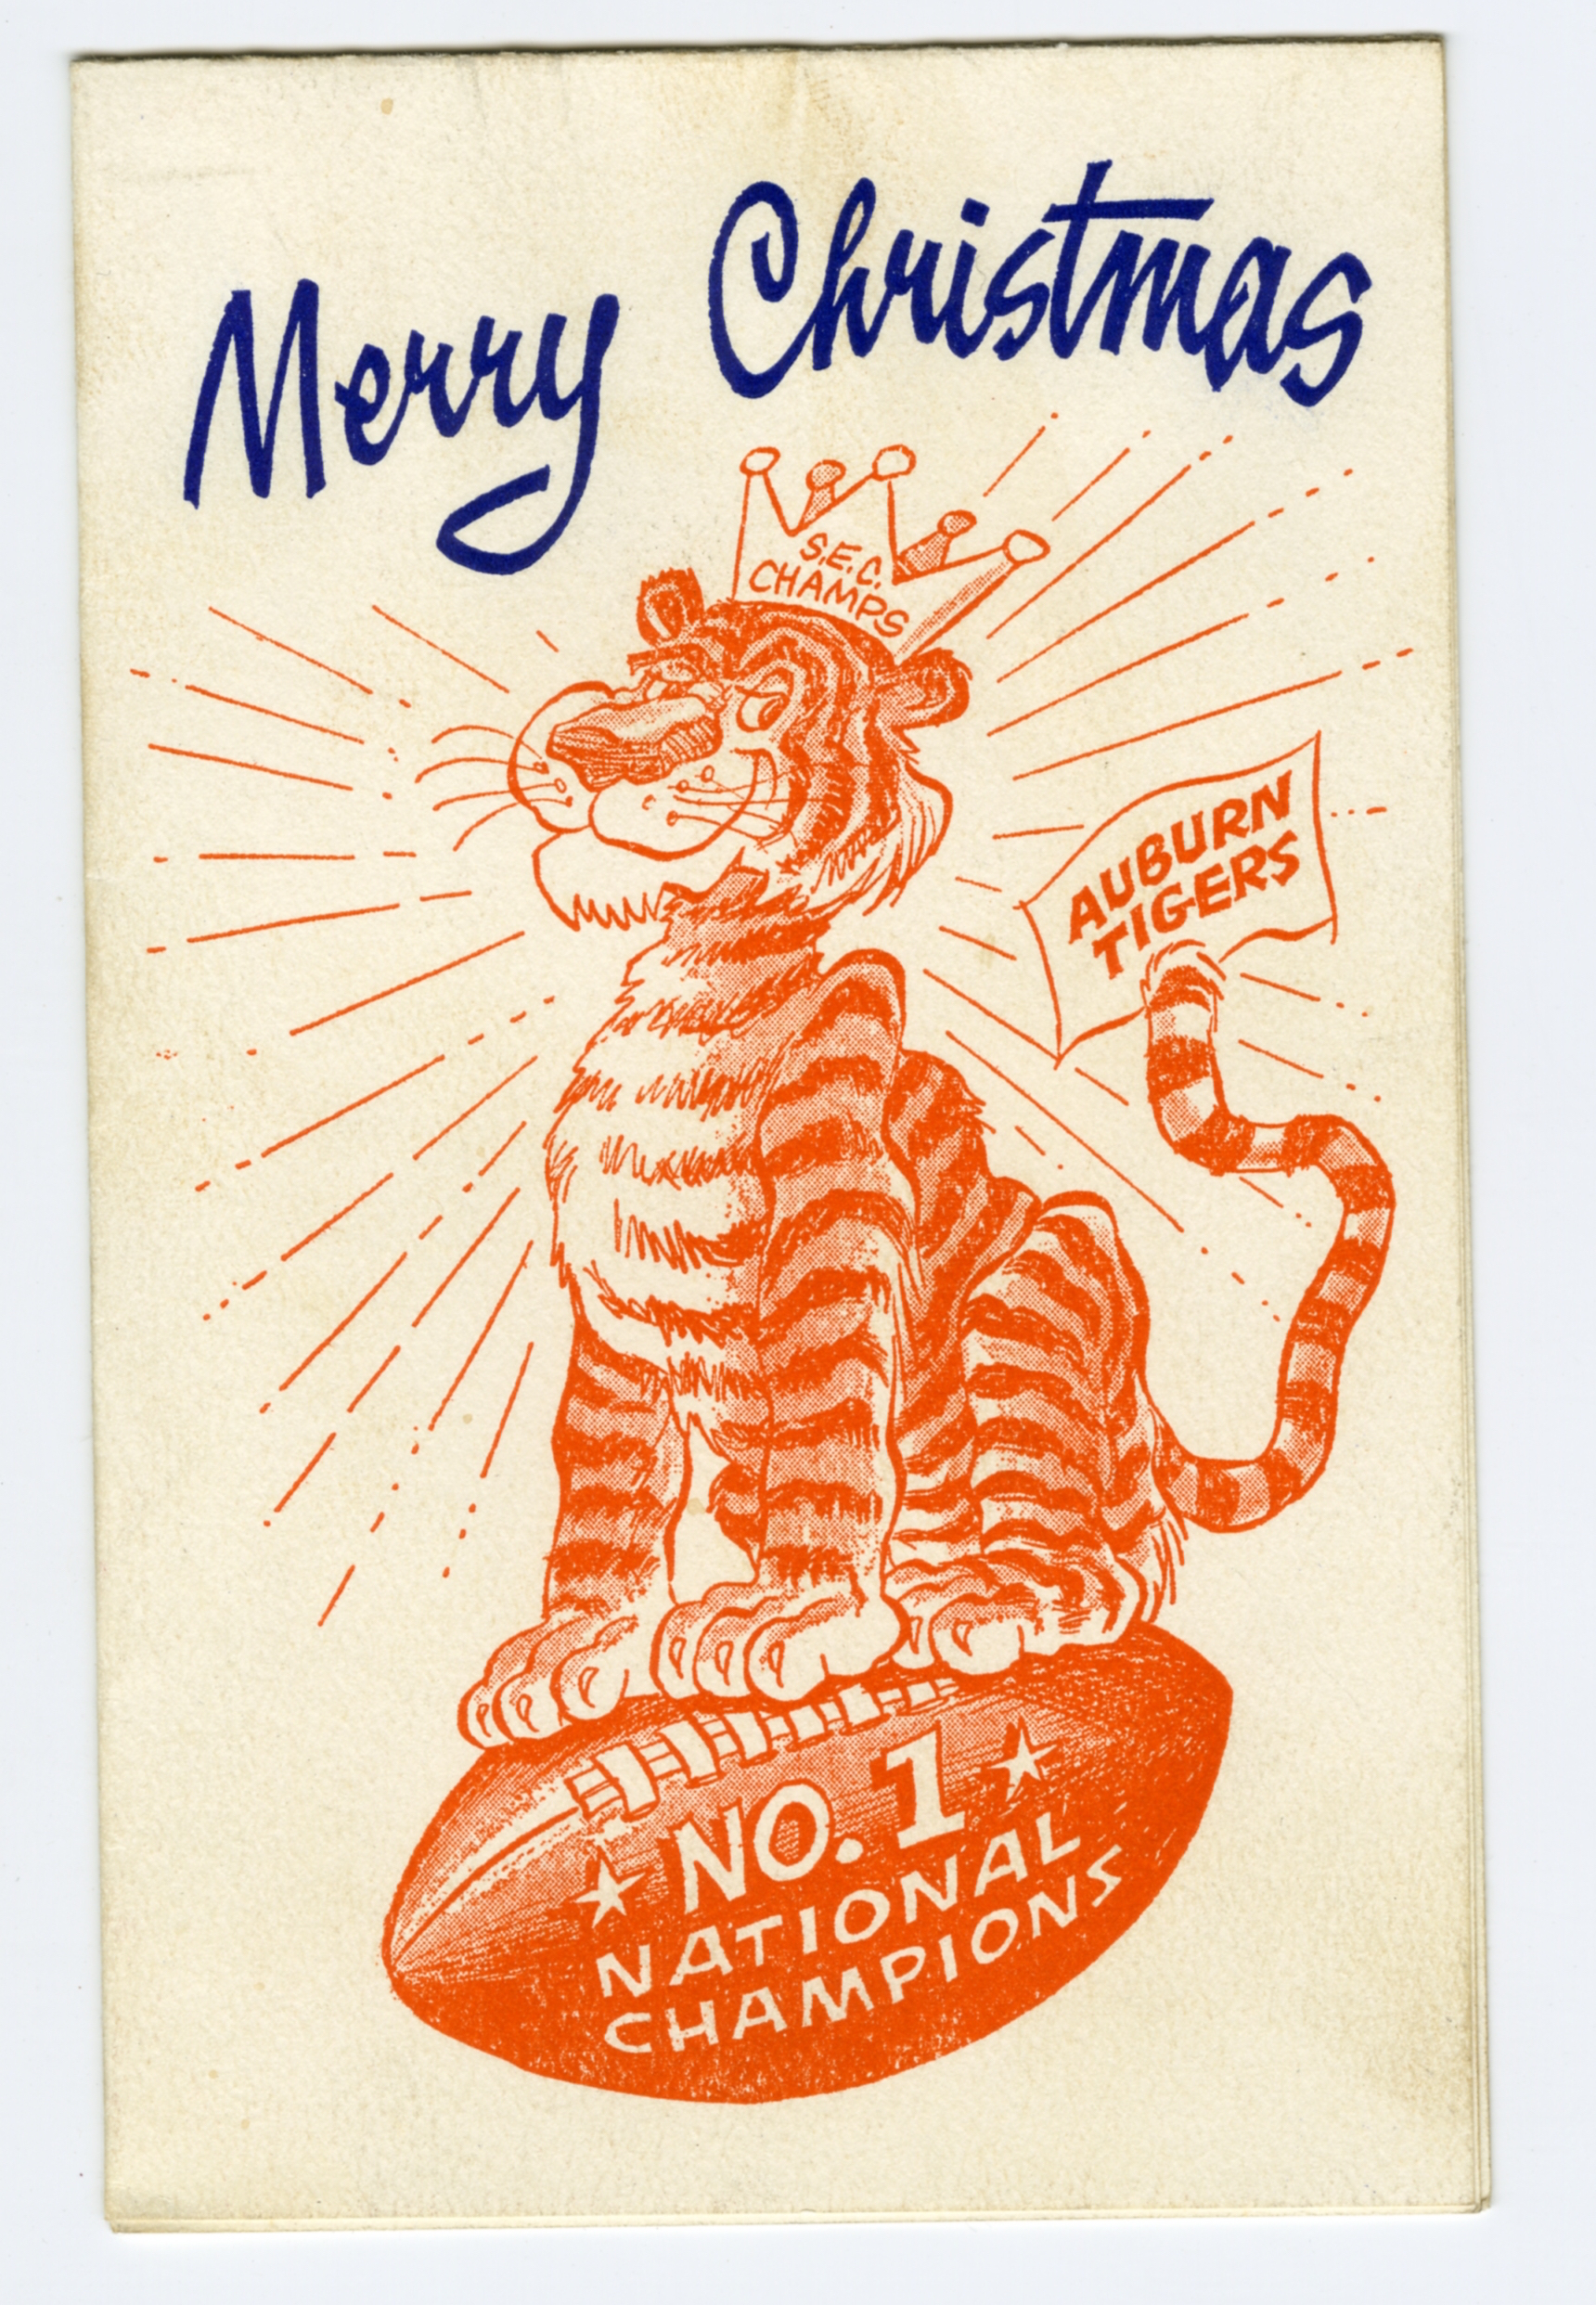 The christmas cards phil neel did for auburns athletics department christmas card aubie 1957 phil neel m4hsunfo